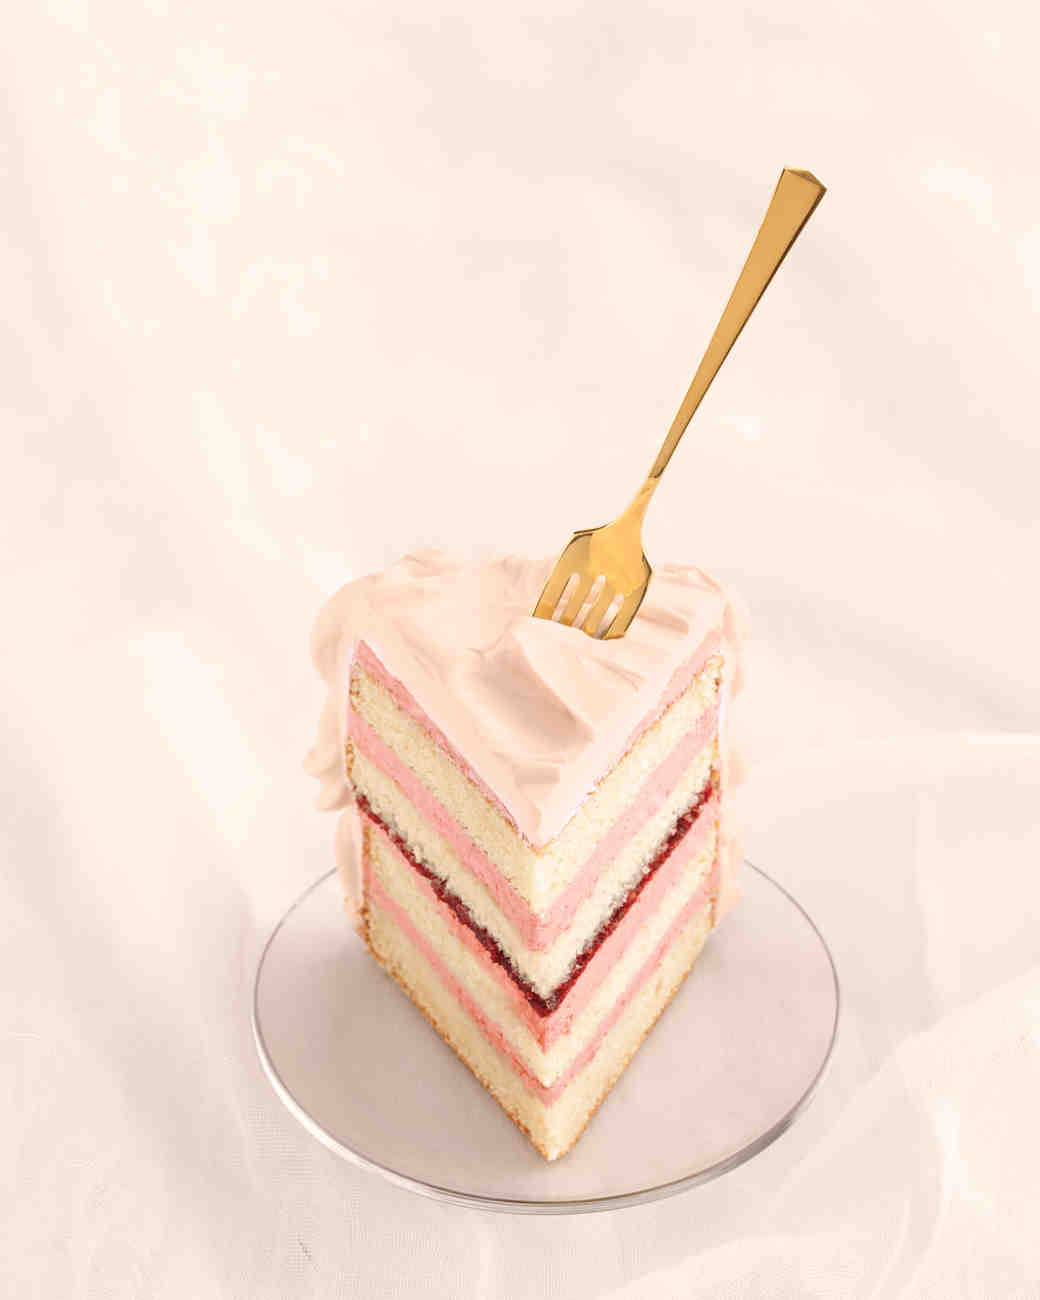 wedding-cake-pink-kir-royale-slice-167-d111828.jpg